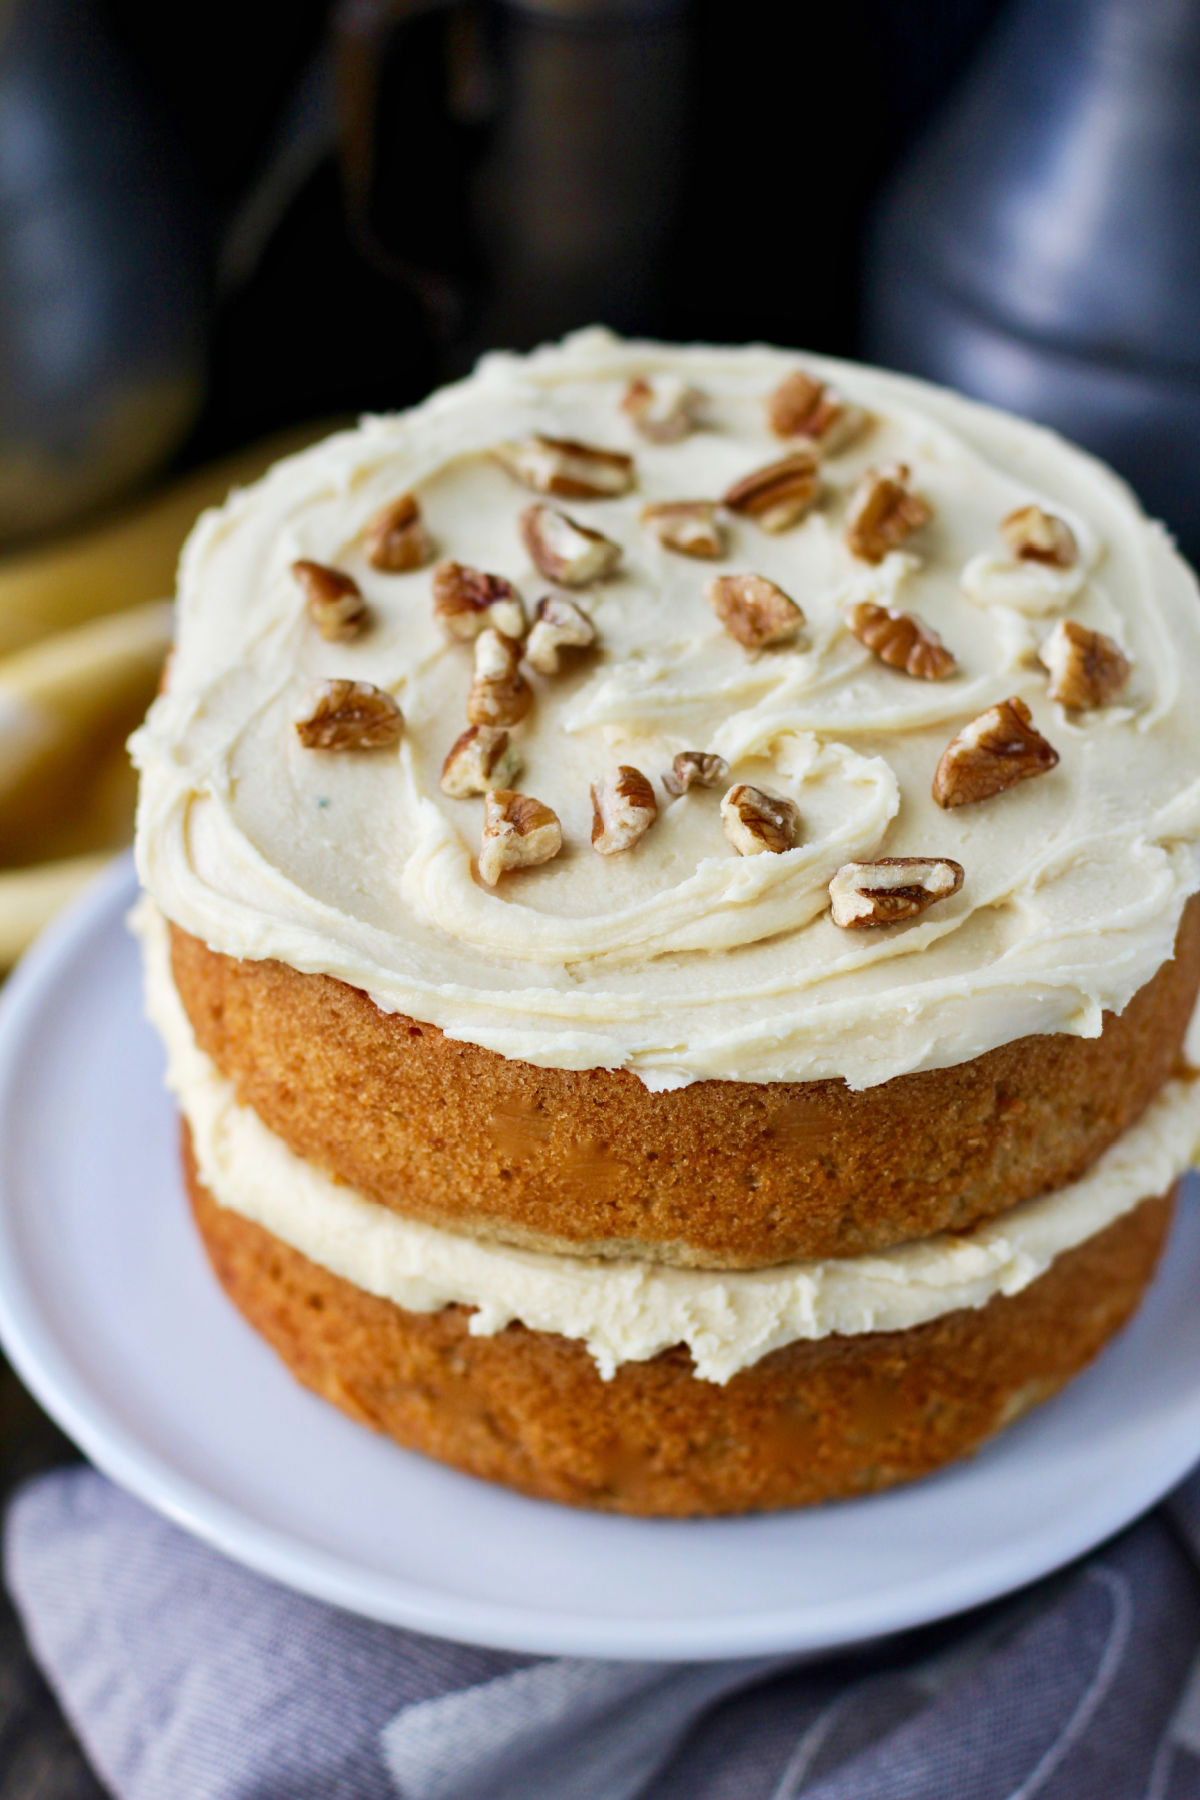 Maple cake on a cake stand with pecans.